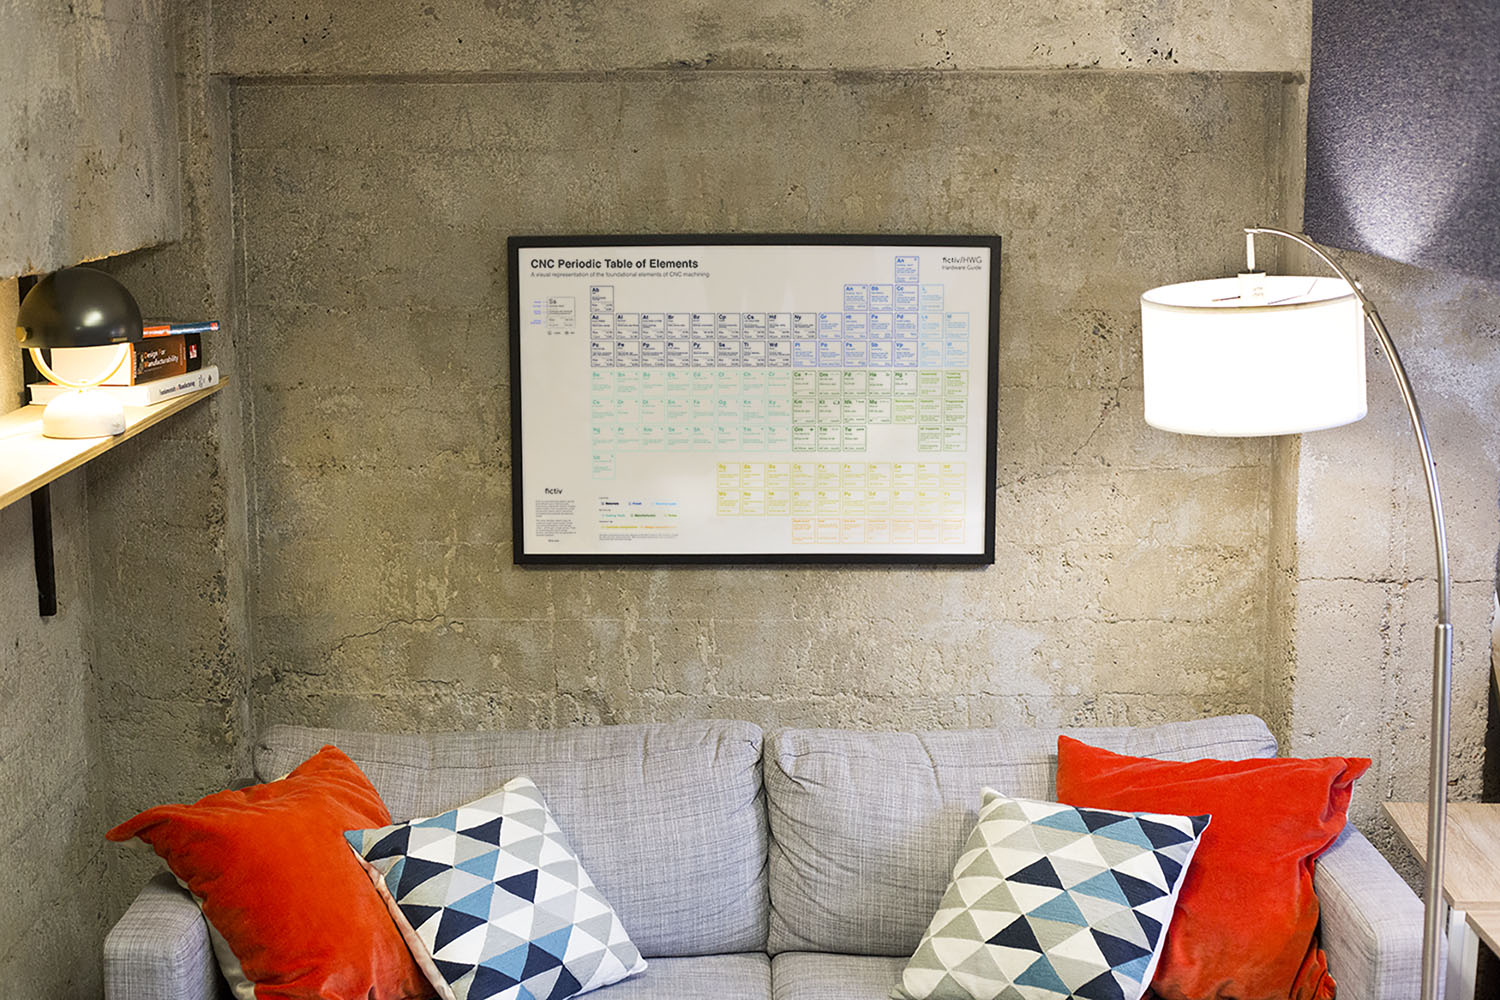 Fictiv CNC periodic table of elements poster